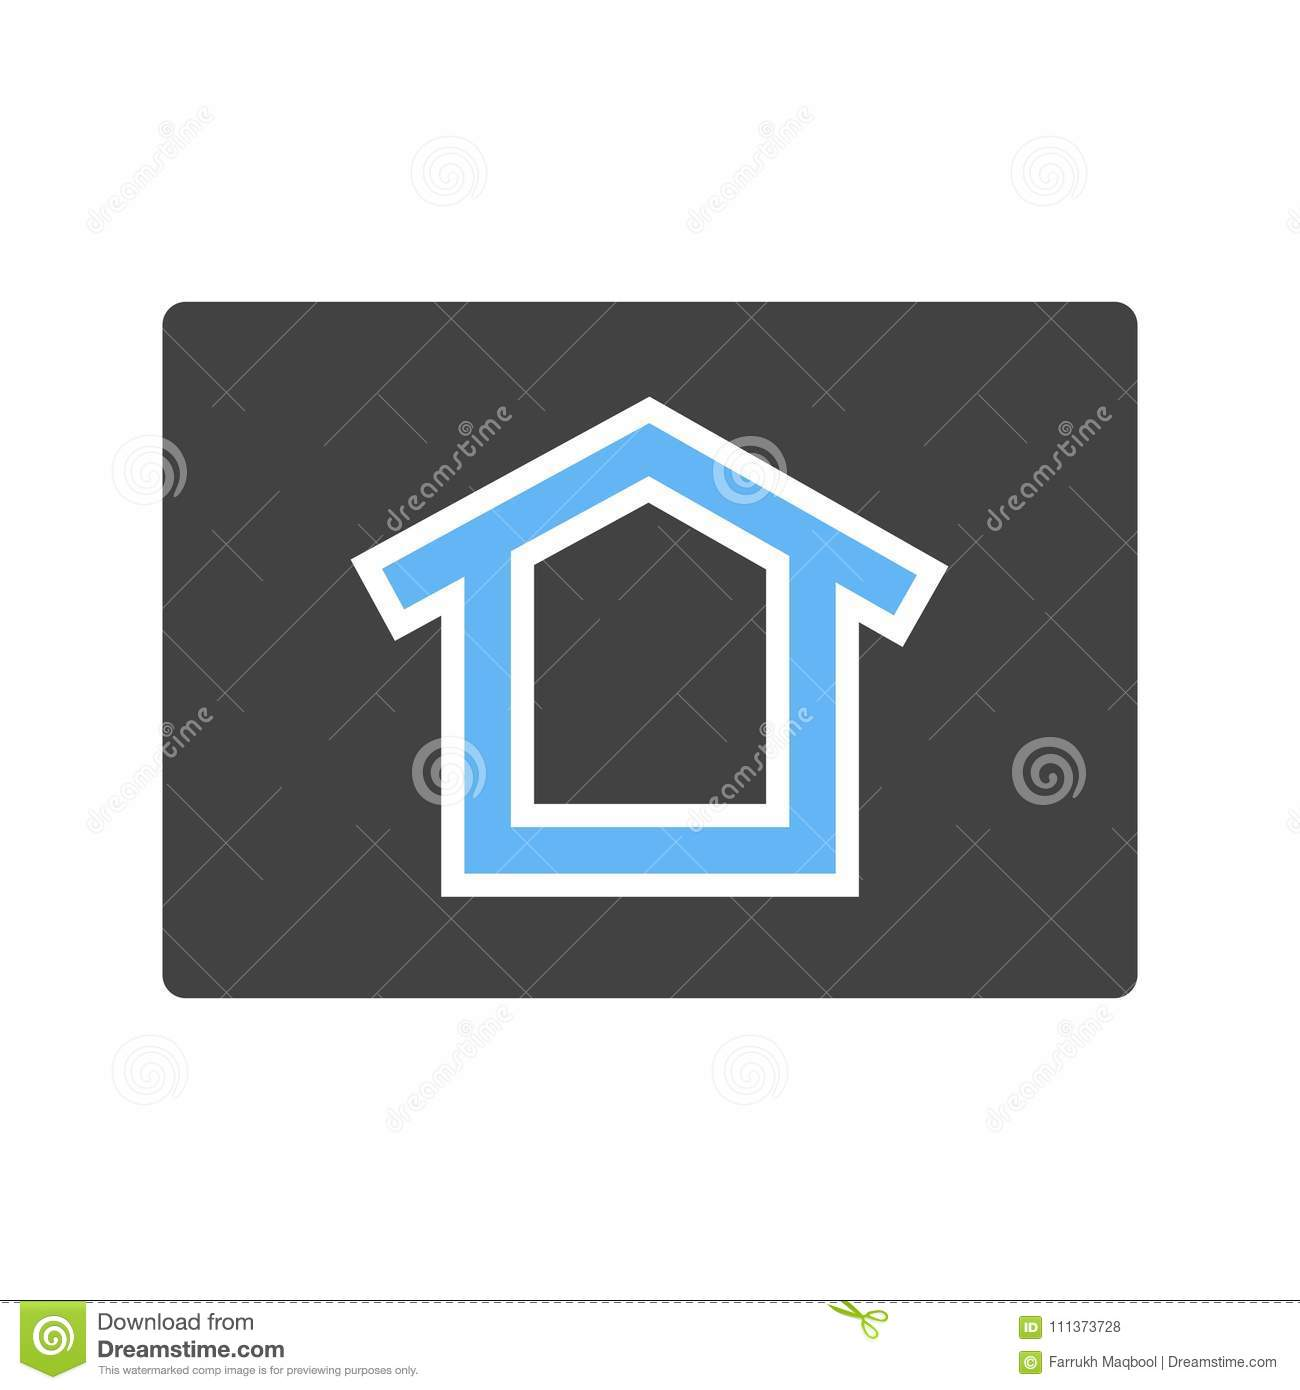 Homepage, connection icon stock vector  Illustration of page